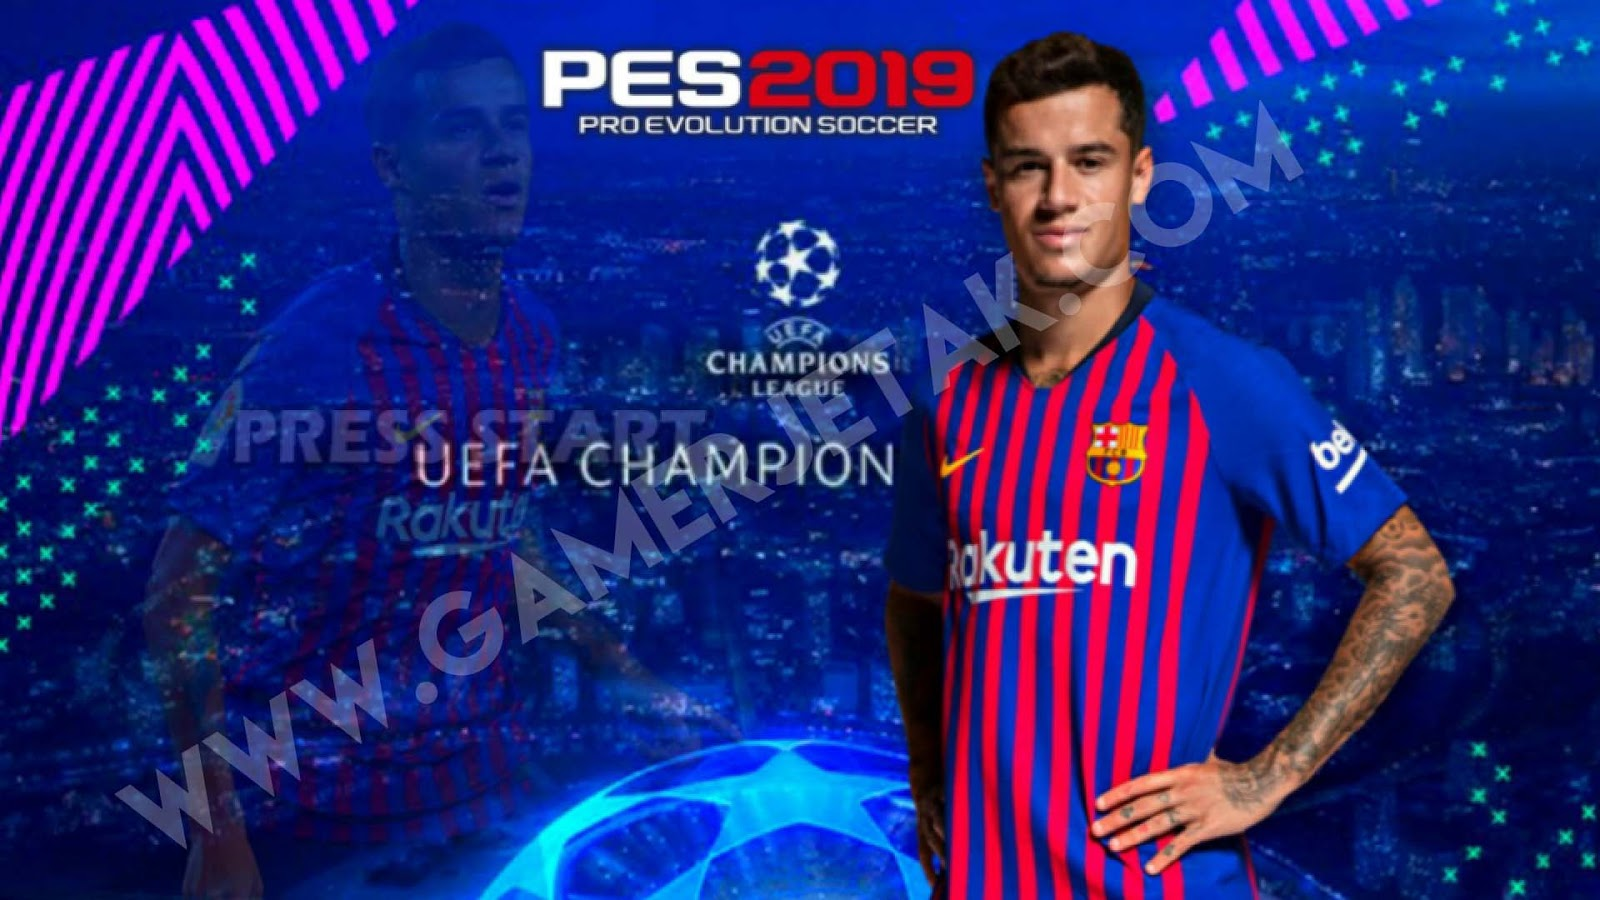 Download Pes 2019 Lite Android Mod UEFA Champion Ppsspp Update